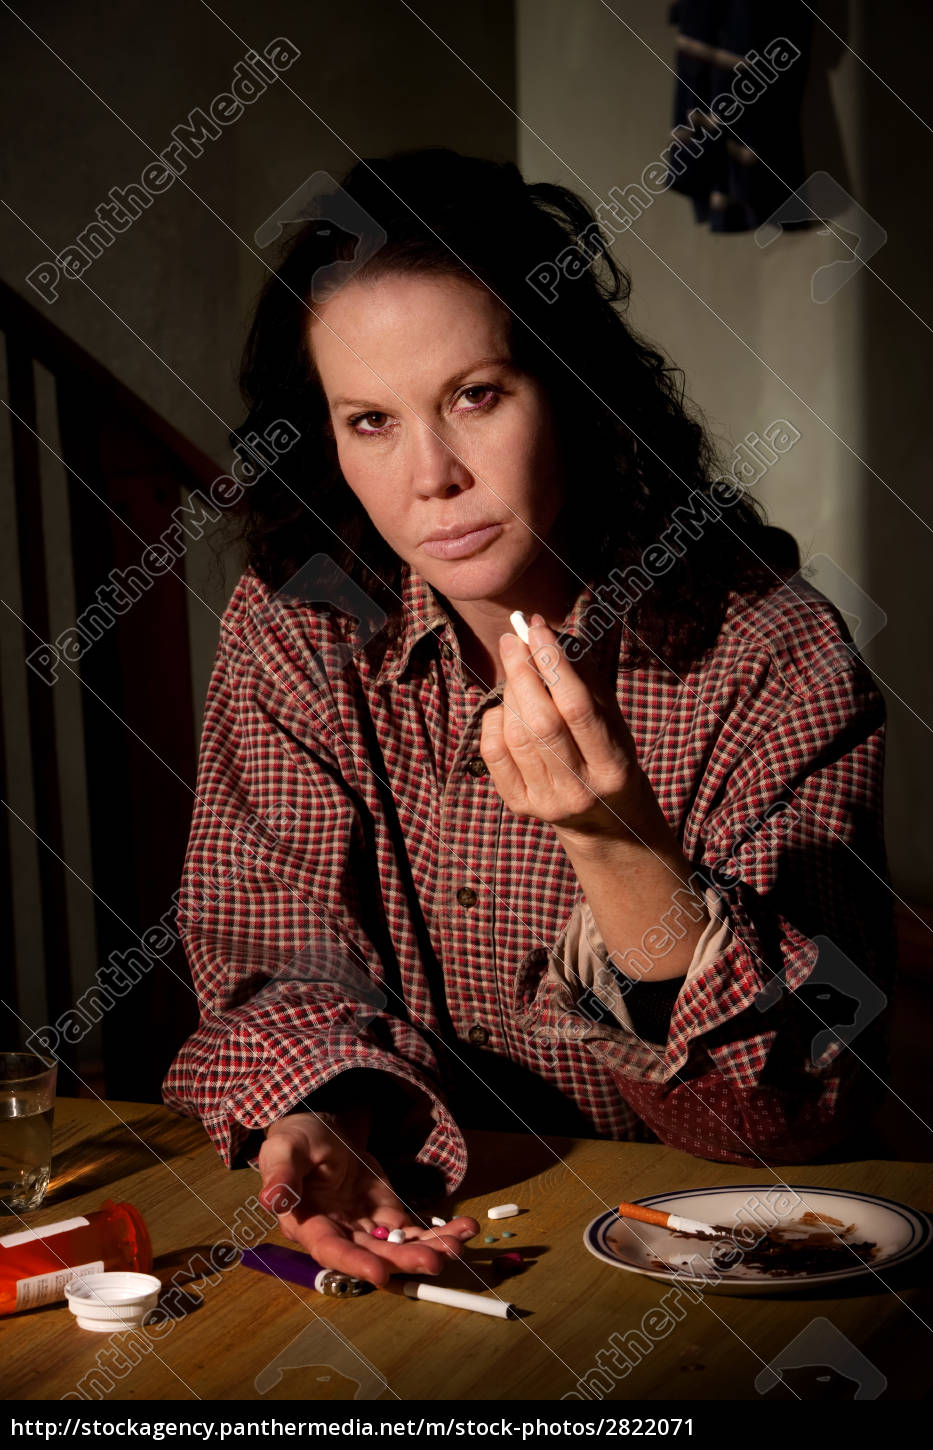 depressed, woman, with, illicit, prescription, medicine - 2822071